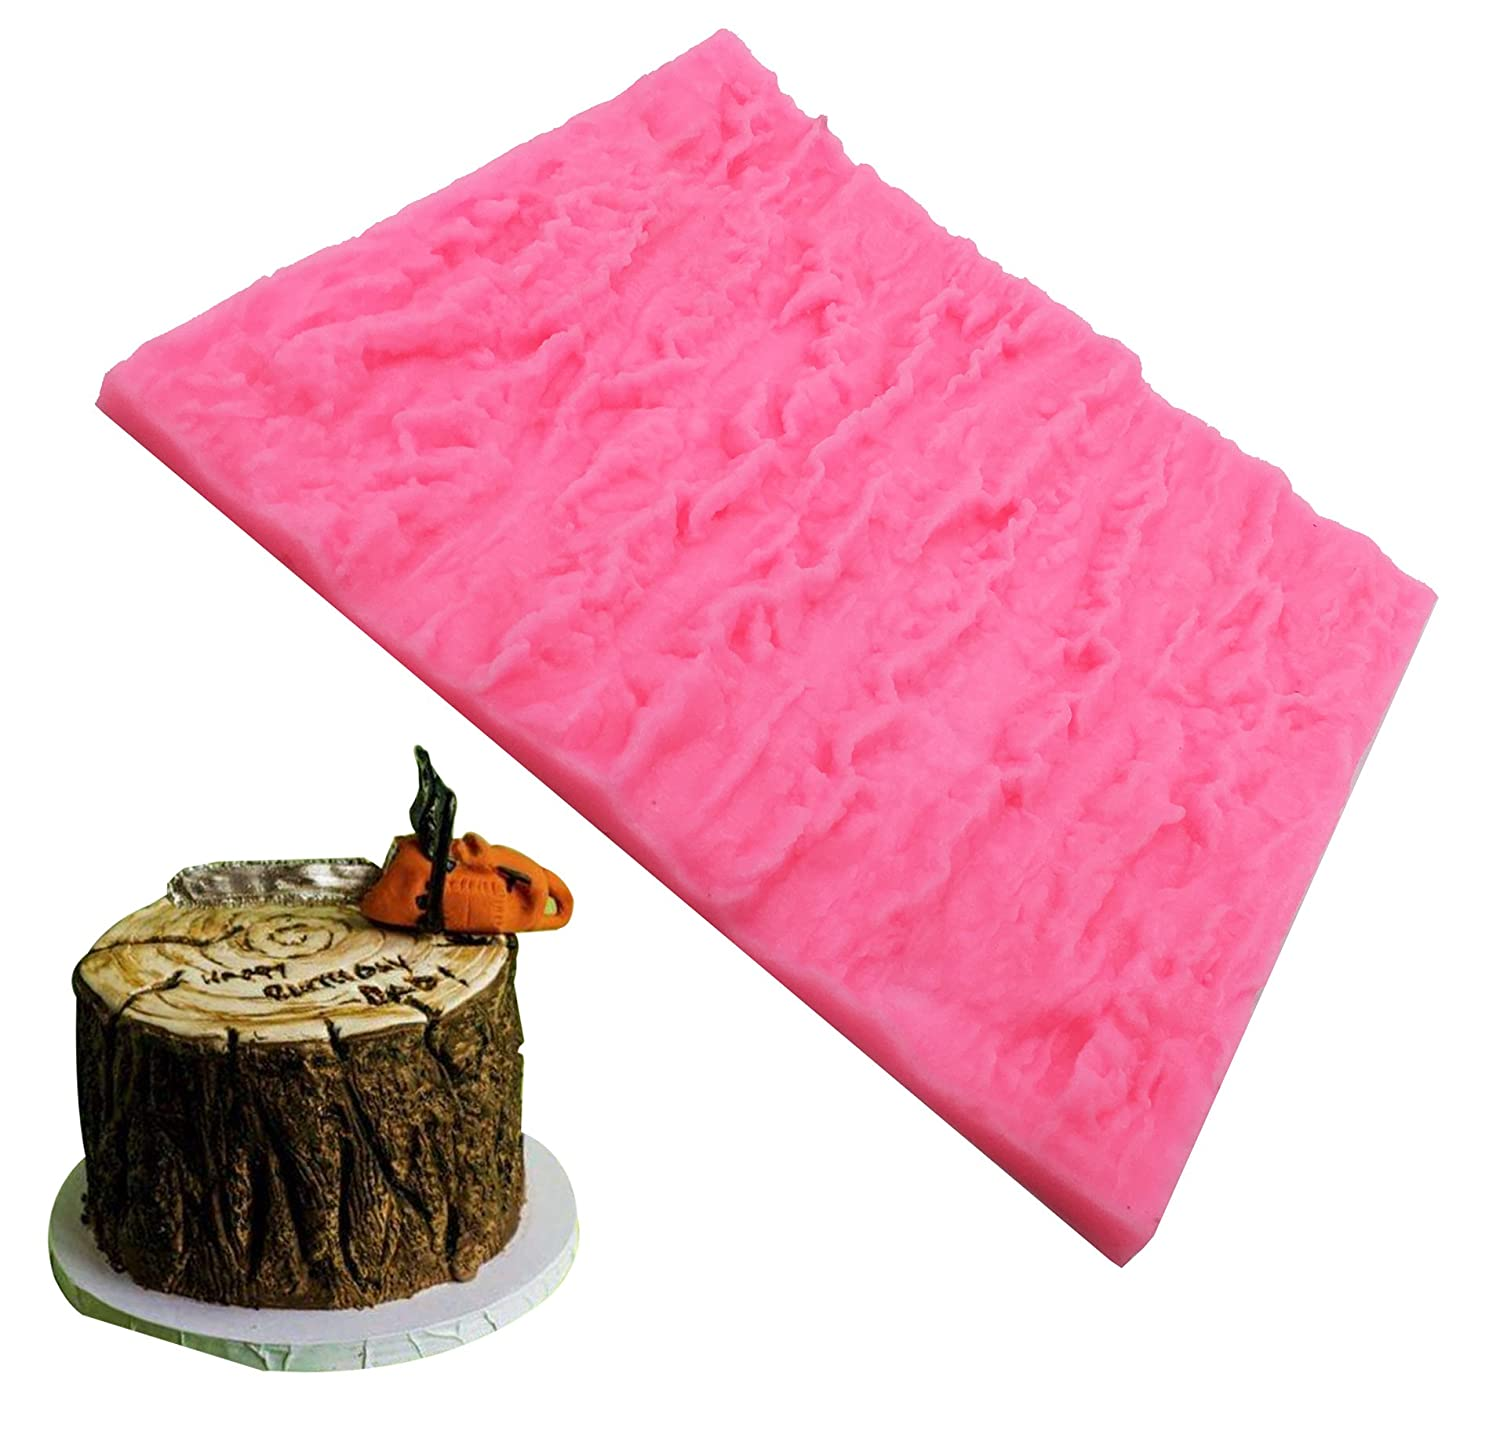 Fondant Impression Mat, Tree Bark Texture Design Silicone Cake Decorating Supplies for Cupcake Wedding Cake Decoration Somtis